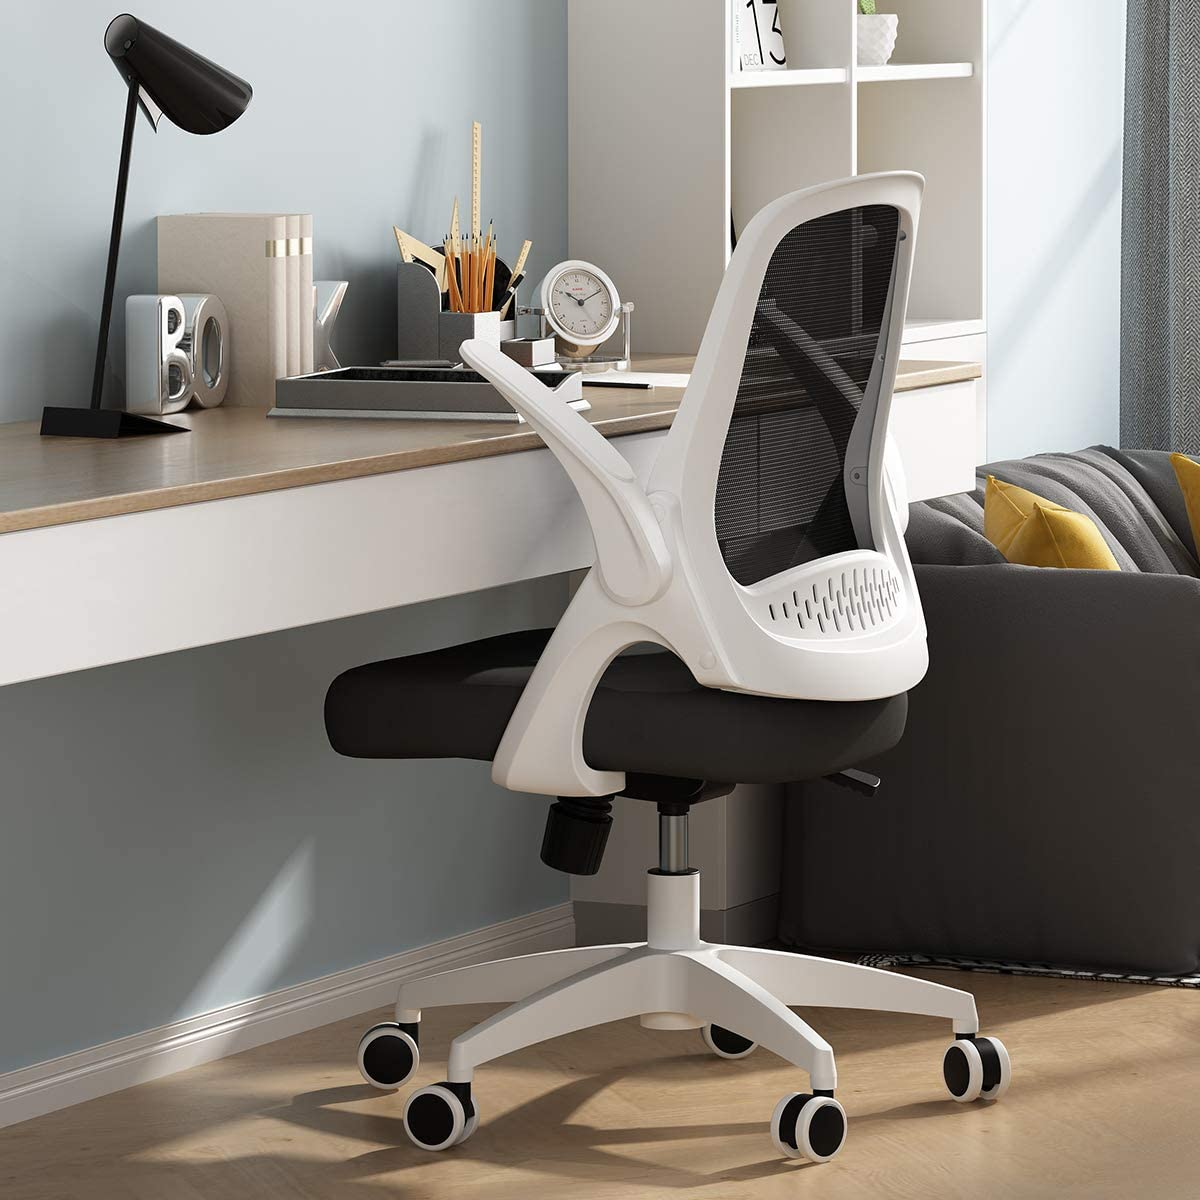 Hbada Office Task Desk Chair Swivel Home Comfort Chair